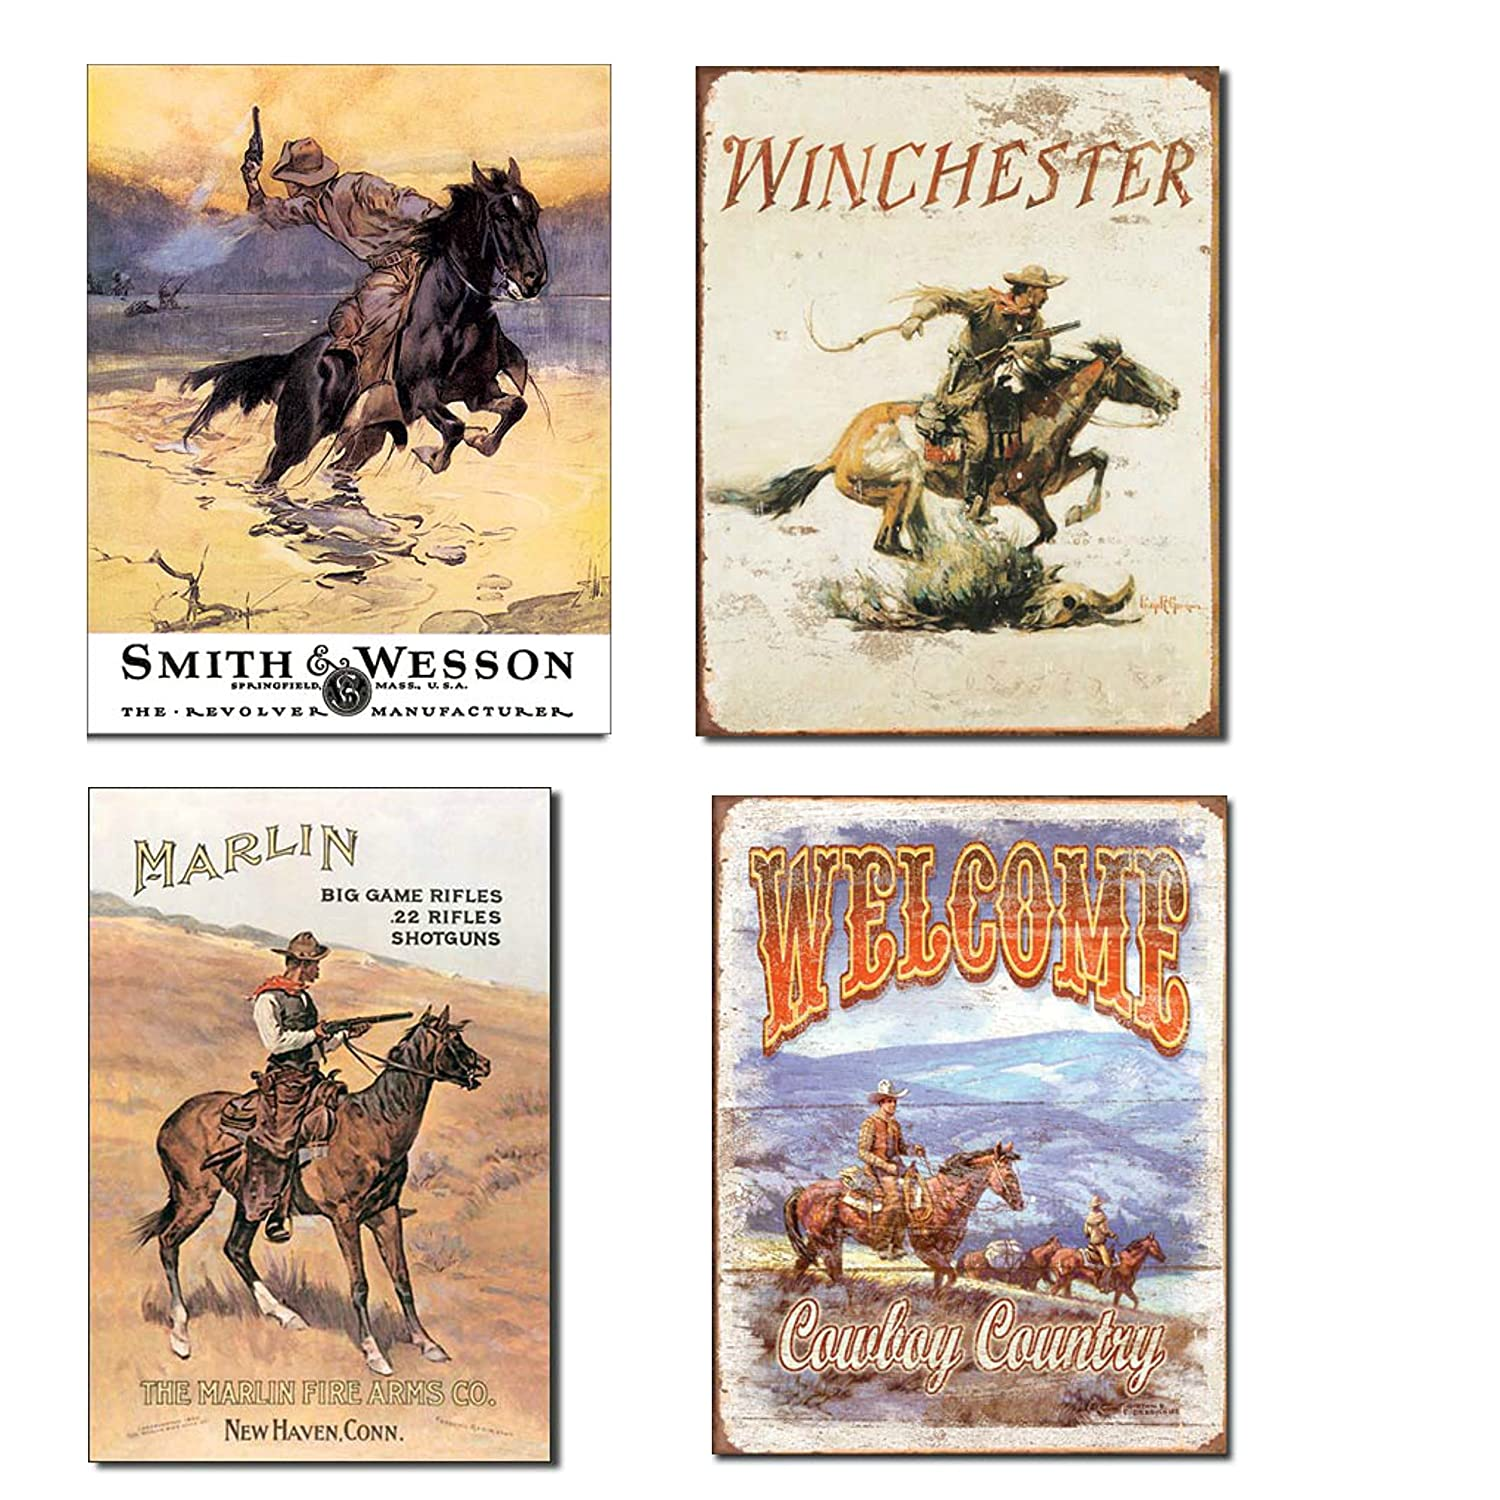 Vintage Cowboy Tin Sign Bundle - Smith & Wesson Hostiles, Winchester, Marlin/Cowboy on Horse and Welcome Cowboy Country